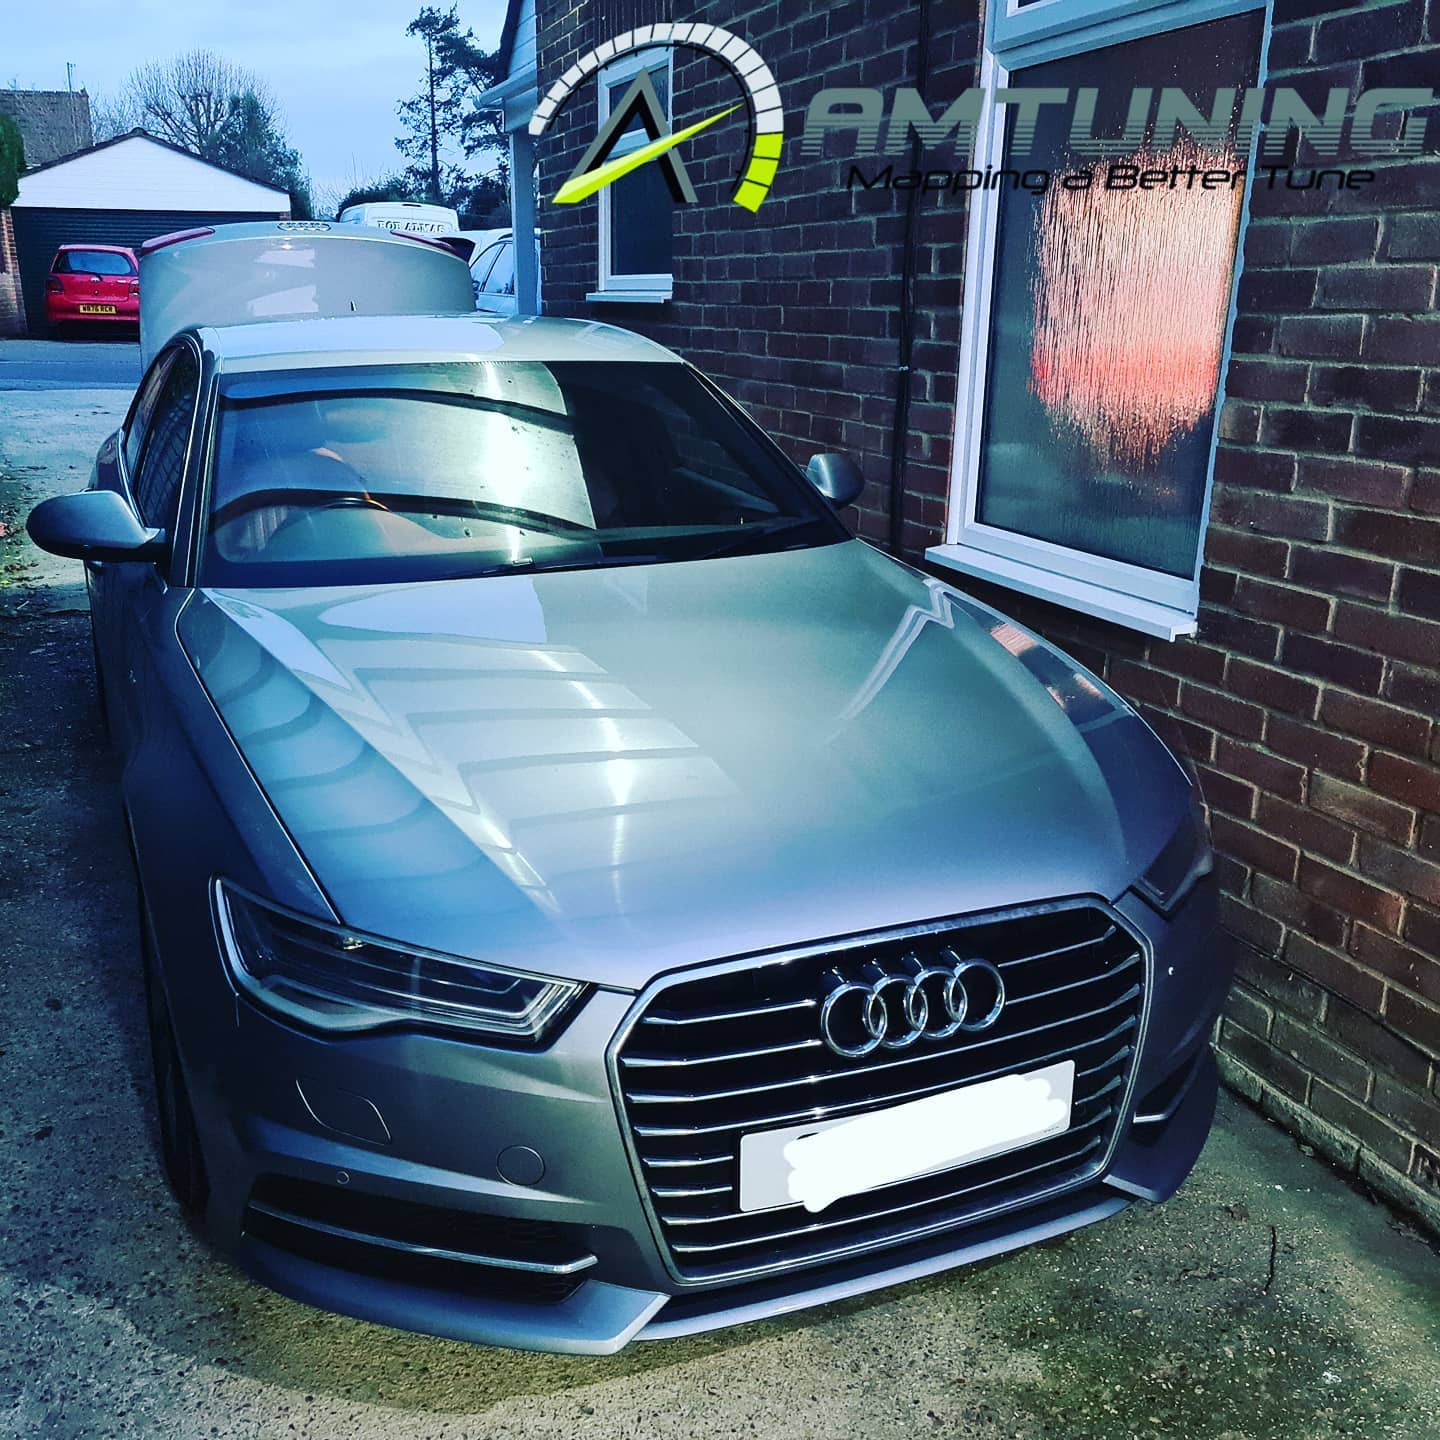 Audi A6 Ultra Remapped in Portsmouth